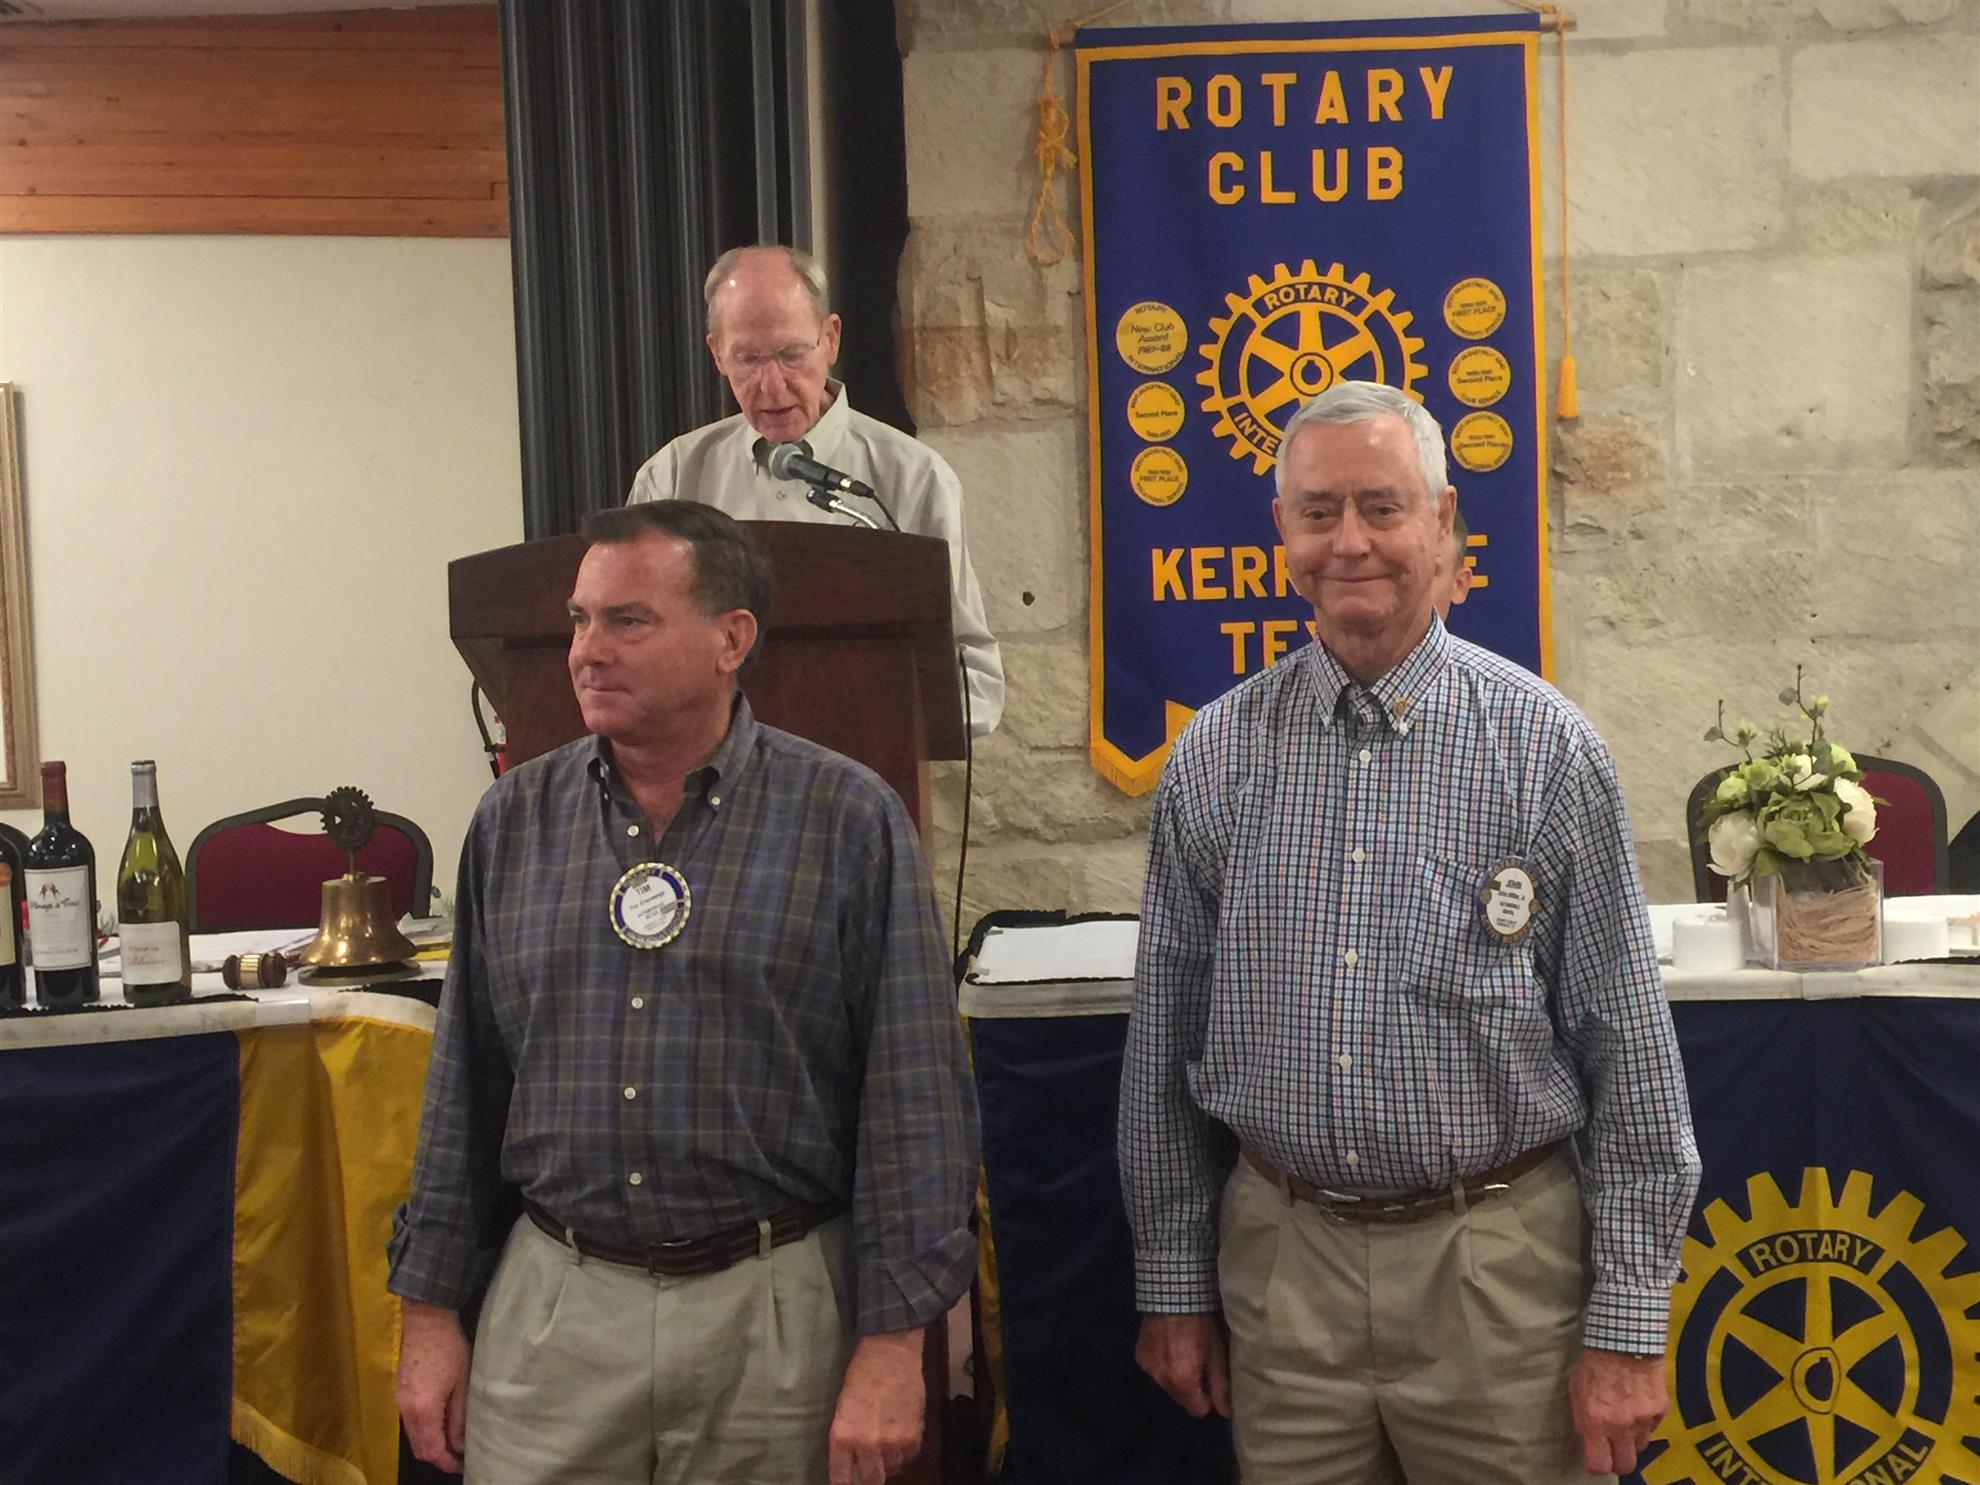 Stories Rotary Club Of Kerrville Paul Browne Two Ideas For Future Technology Integration In Stem Bob Schmerbeck Introduces The Harris Fellows Tim Creweige And John Miller Received Their Award